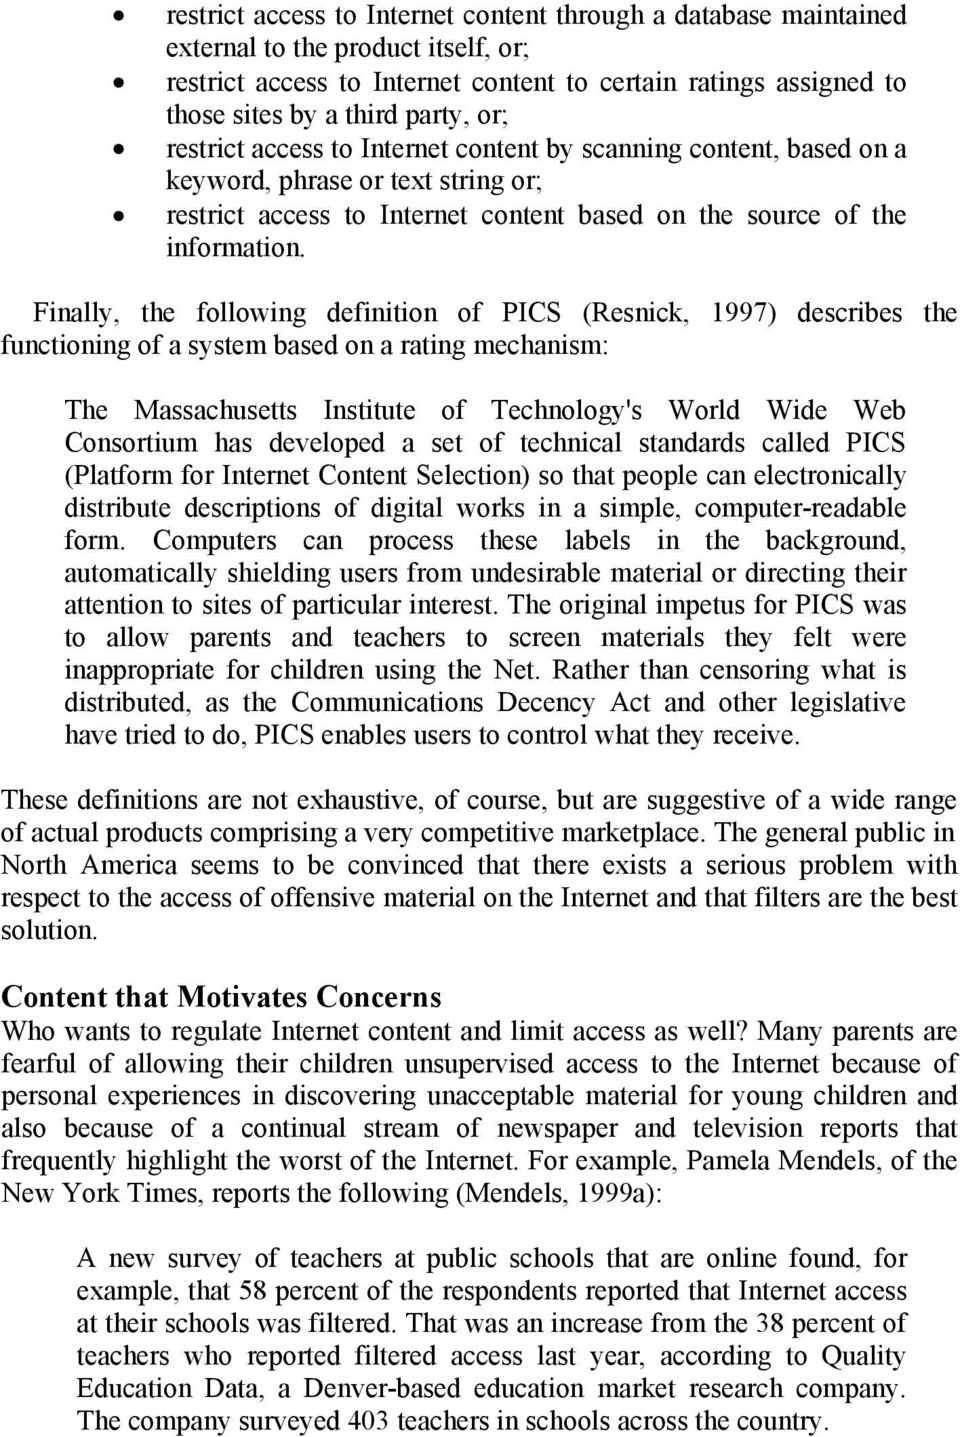 Finally, the following definition of PICS (Resnick, 1997) describes the functioning of a system based on a rating mechanism: The Massachusetts Institute of Technology's World Wide Web Consortium has